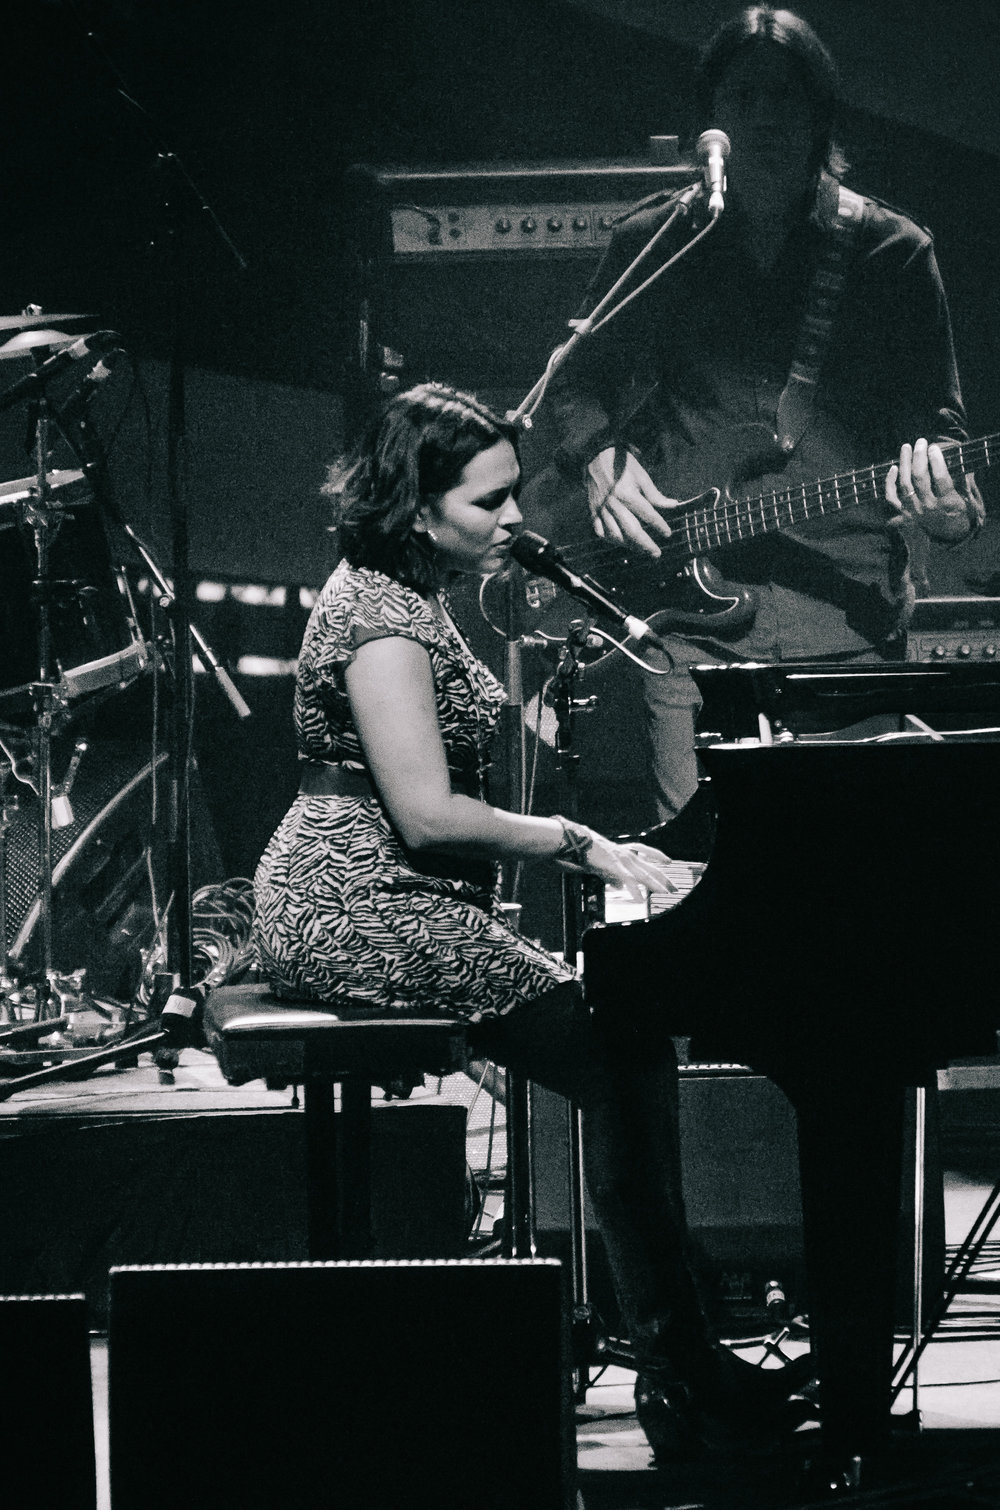 1_Norah_Jones_Queen_Elizabeth_Theatre-Timothy_Nguyen-20161018 (4 of 2).jpg